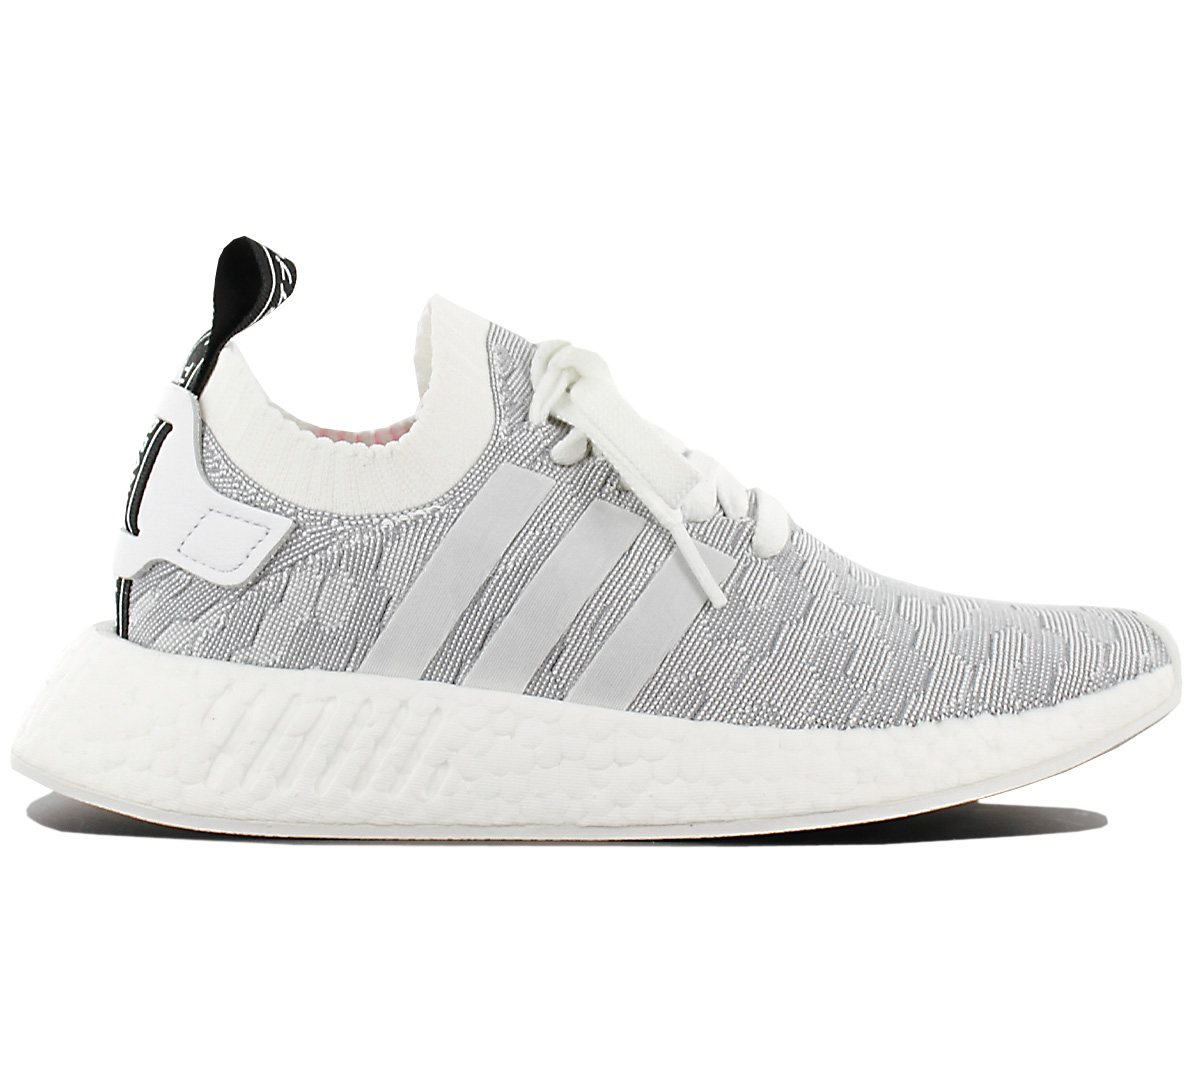 new product 56f4e f1fd1 Details about NEW adidas Originals NMD R2 PK W BY9520 Women''s Shoes  Trainers Sneakers SALE